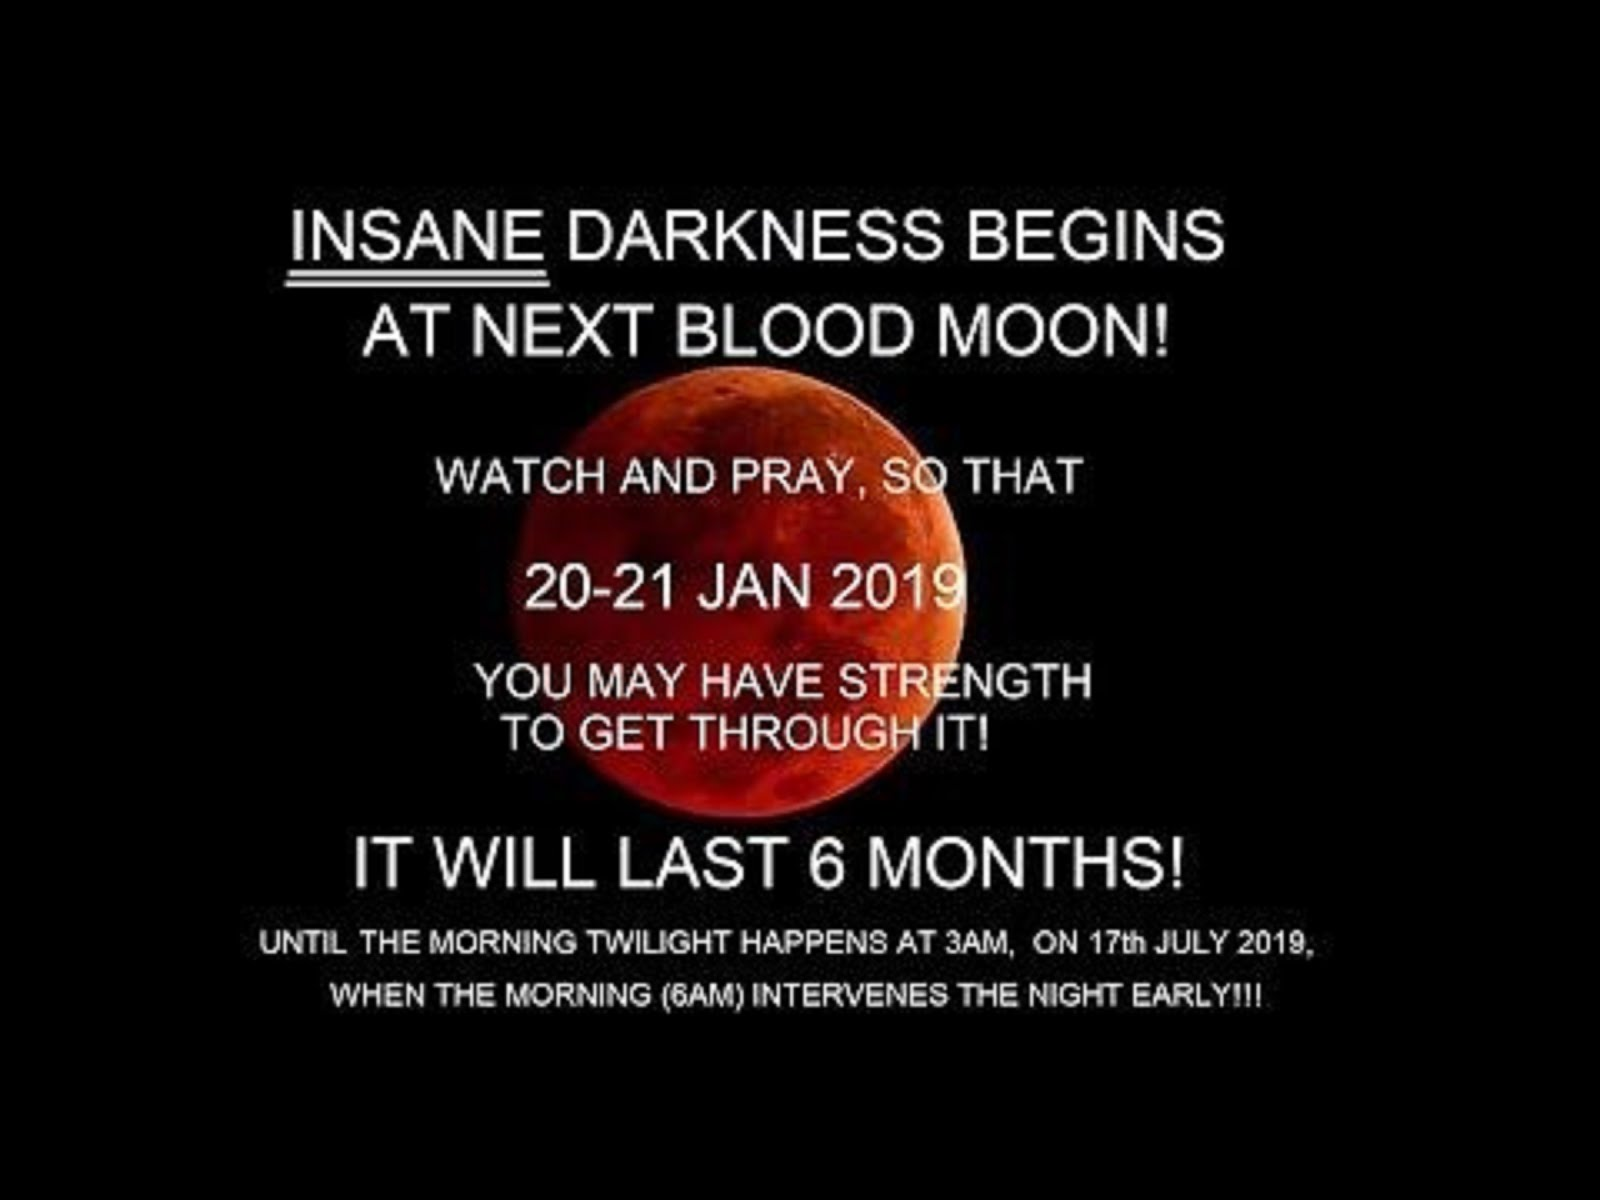 INSANE DARKNESS BEGINS AT 20-21 JAN 2019 LASTS FOR SIX MONTHS!